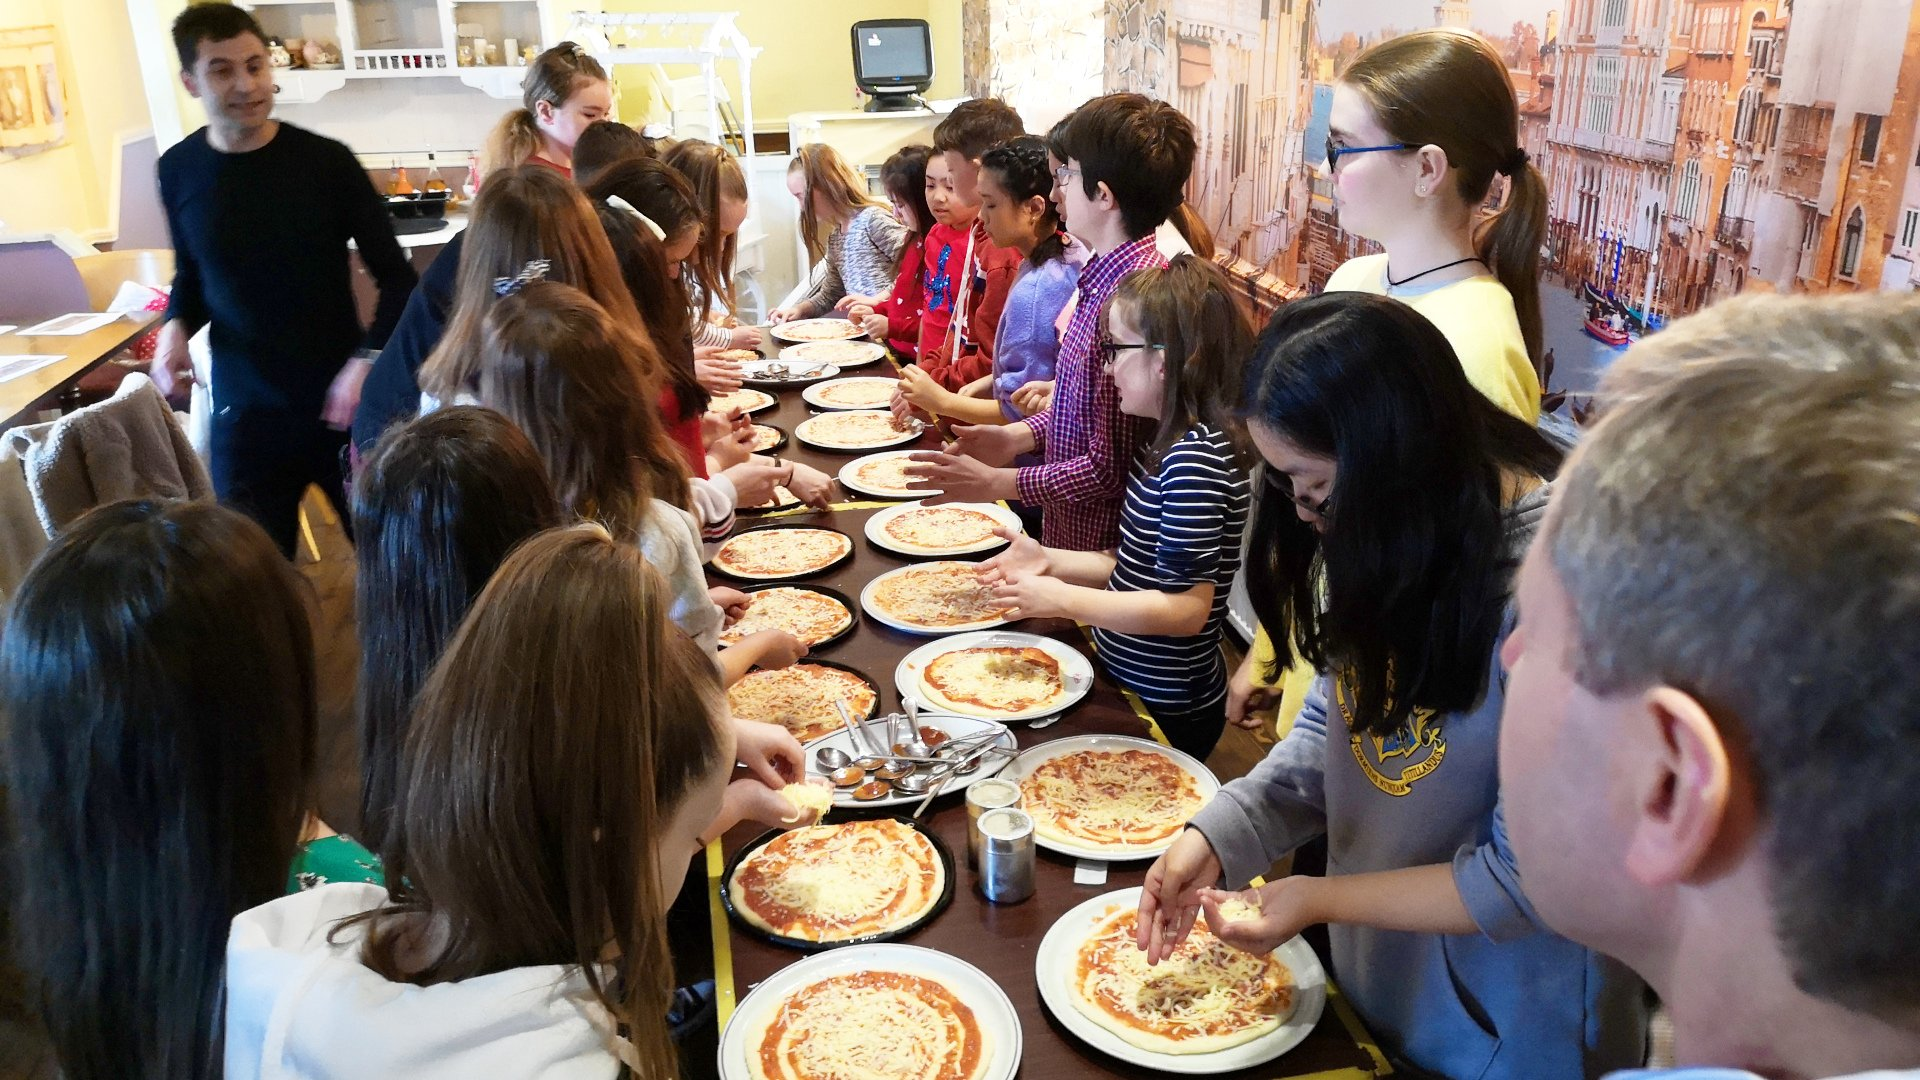 Picture of Our Lady of Victories Children's Choir Make Your Own Pizza Outing